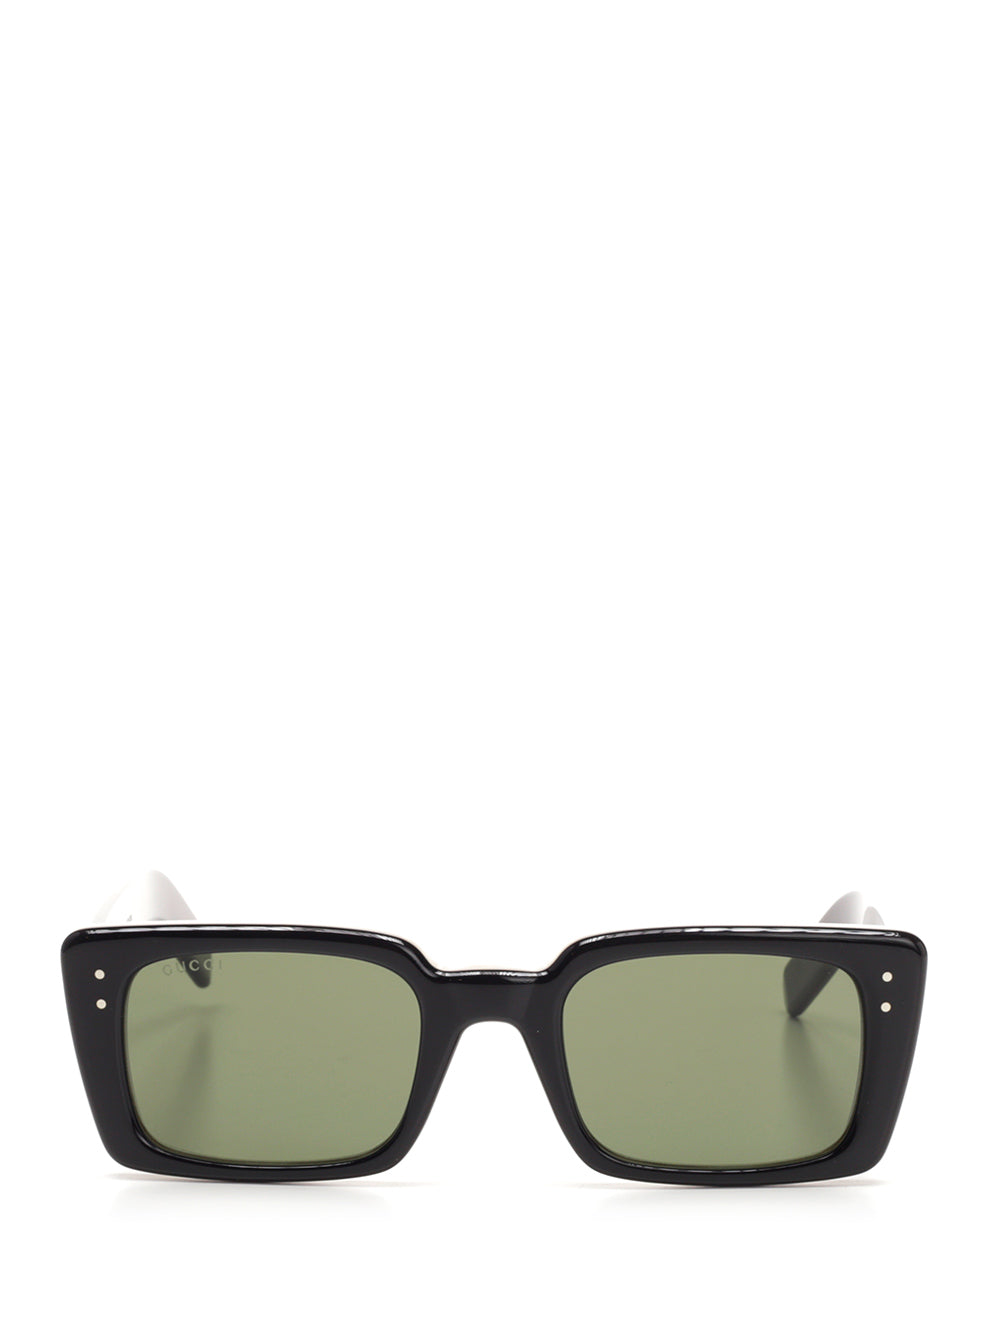 Gucci Eyewear Rectangular Sunglasses In Black